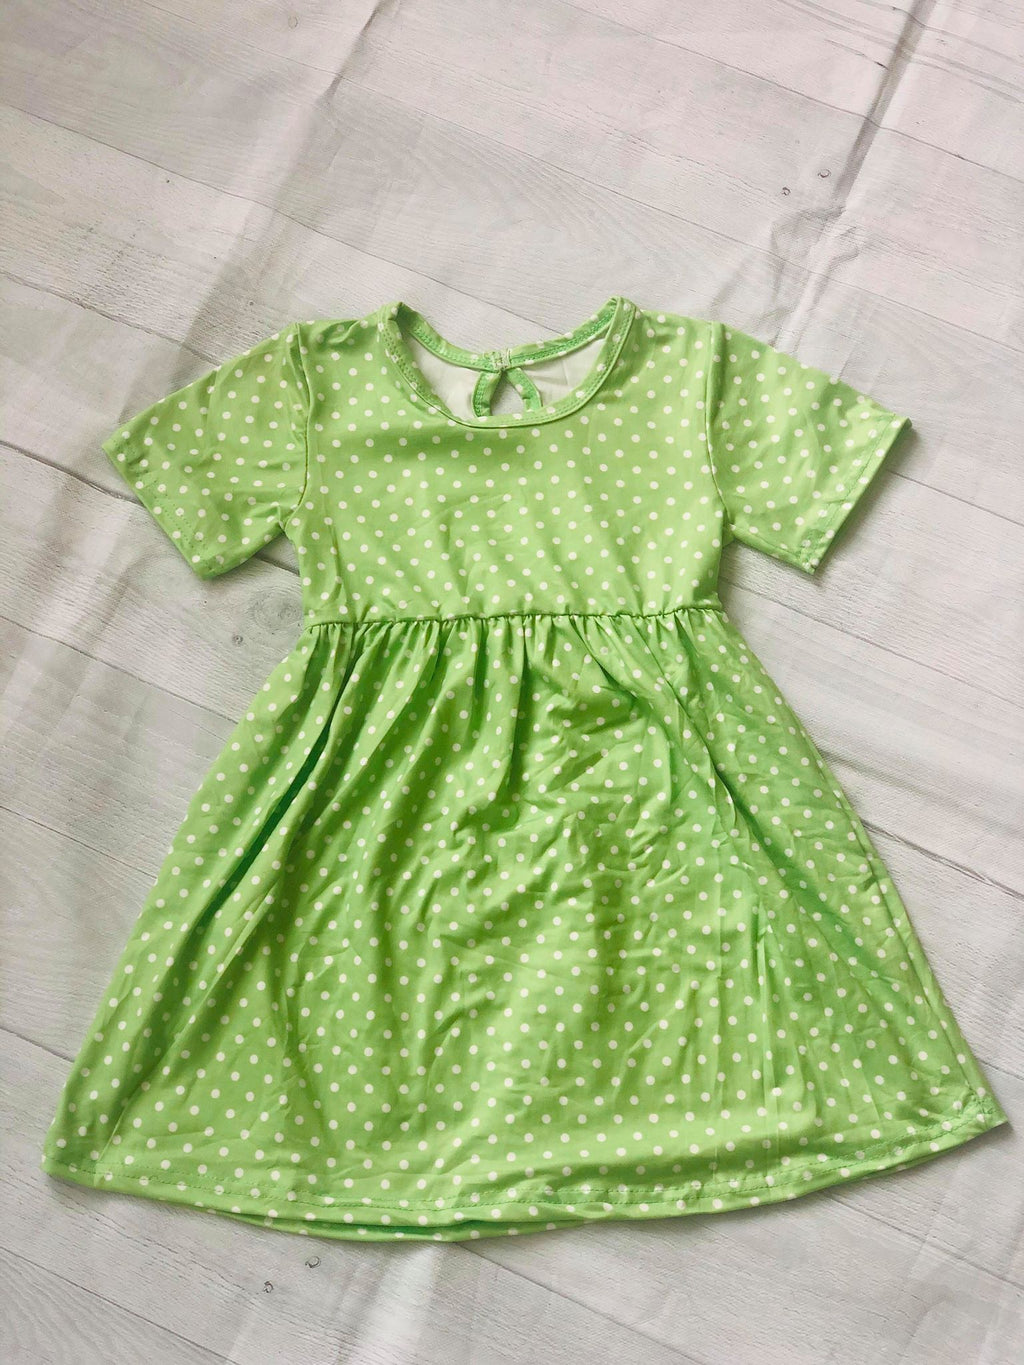 POLKA DOTS MILK SILK DRESS - LIME GREEN